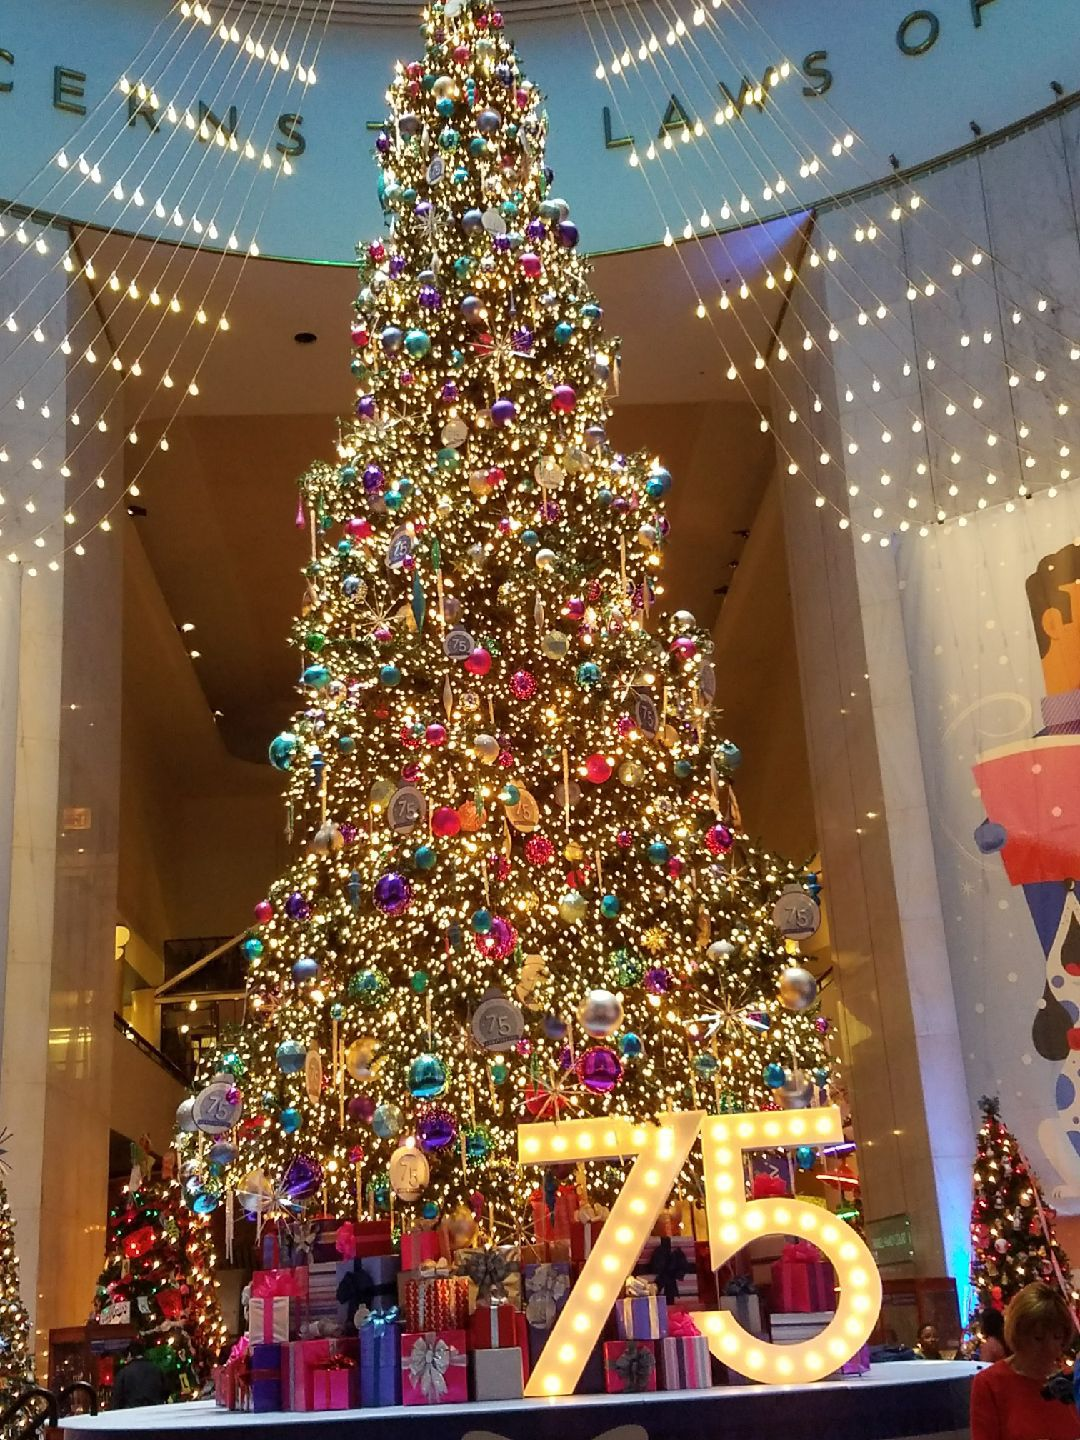 Trees aglow: Christmas Around the World, Holidays of Light star ...